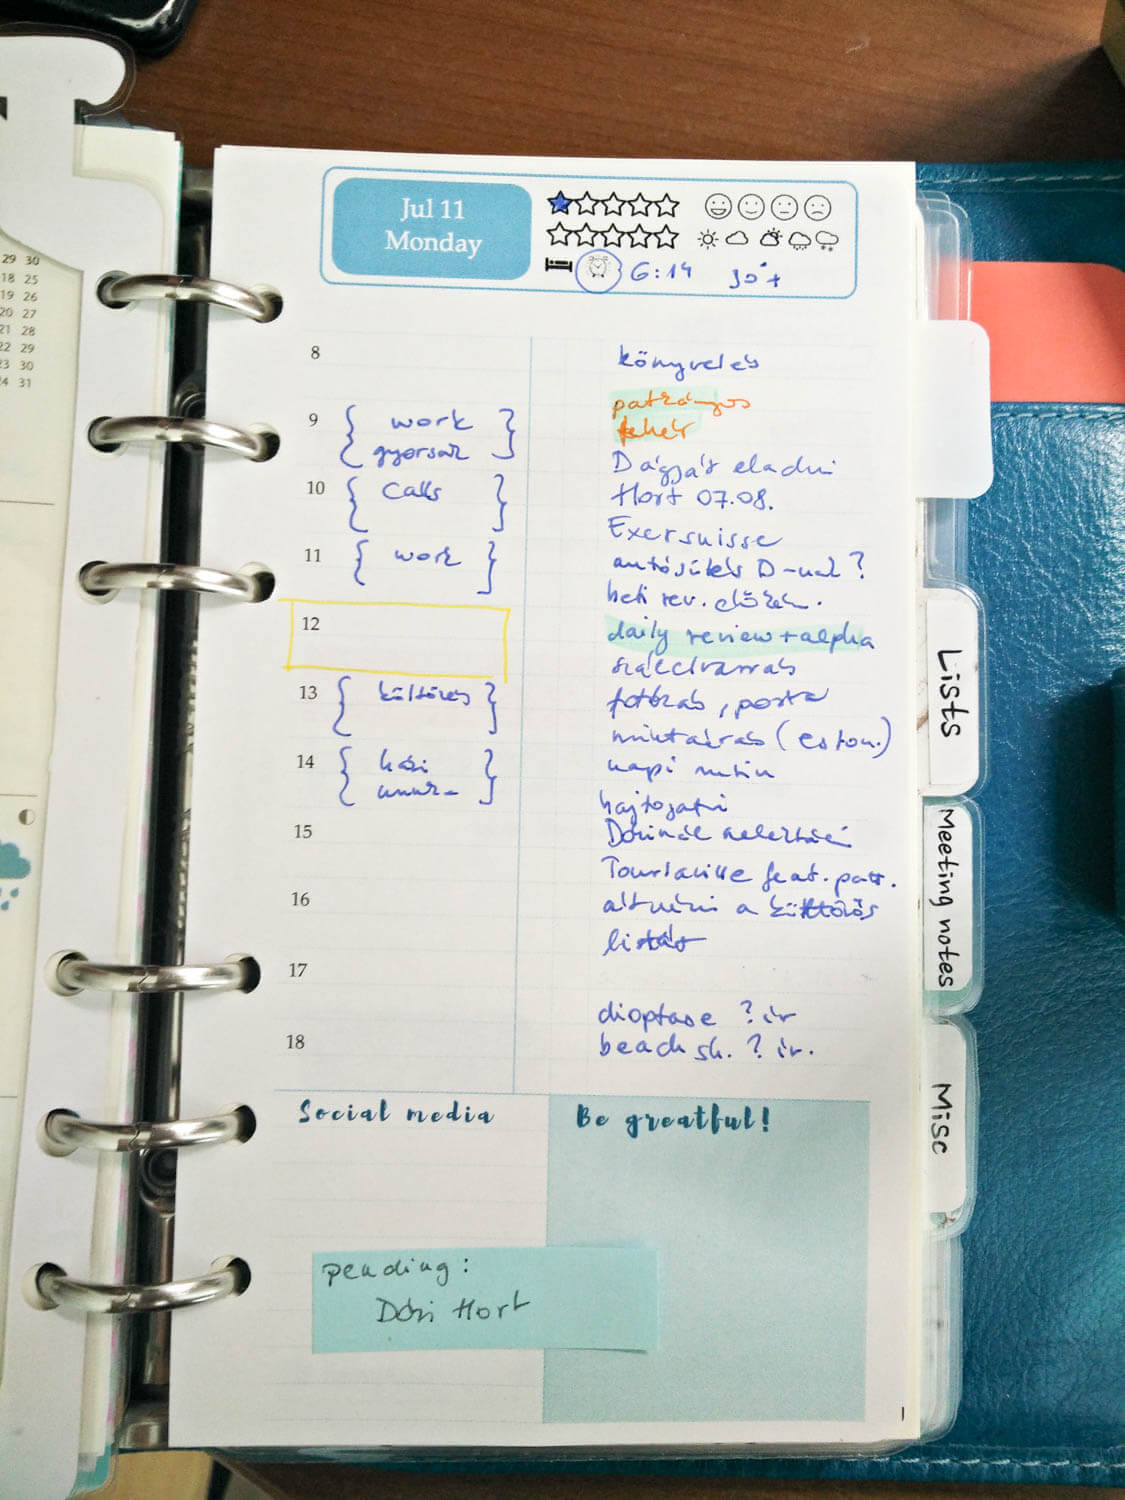 How to deal with the stress caused high number of daily tasks